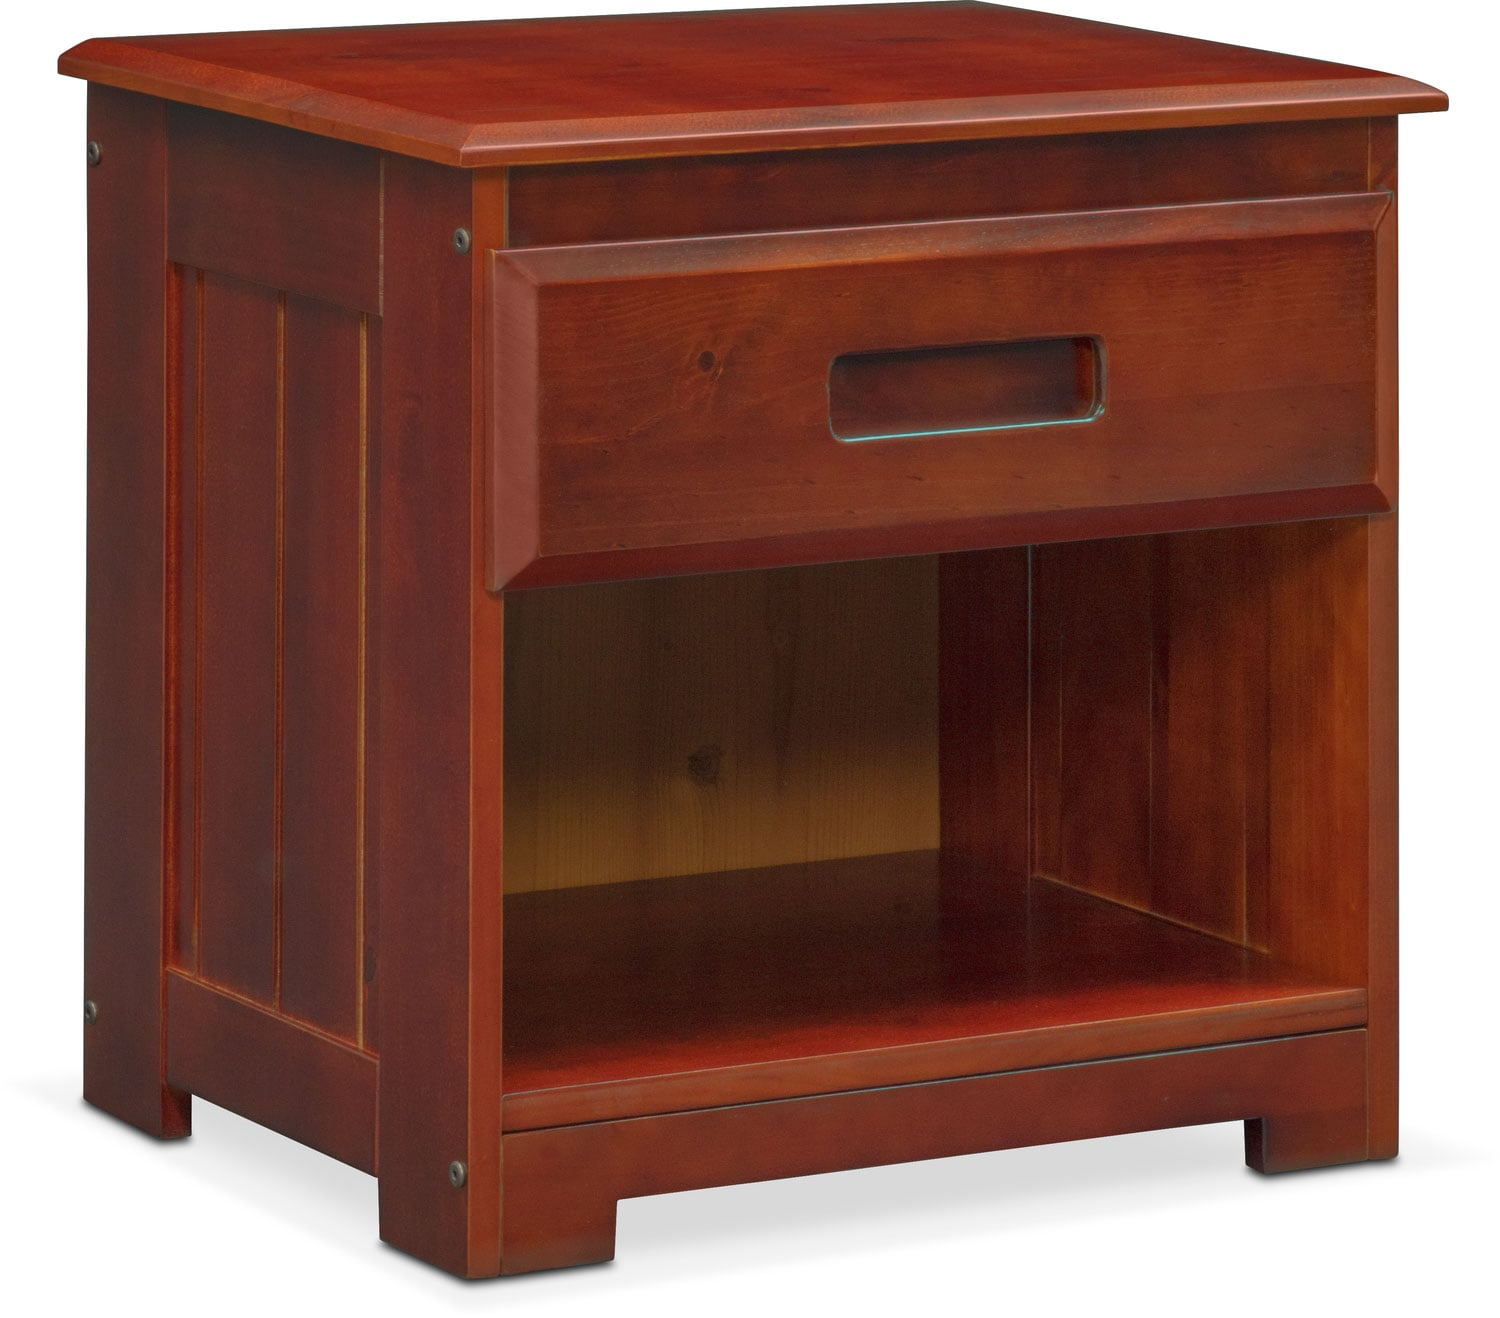 Kids Furniture - Ranger Nightstand